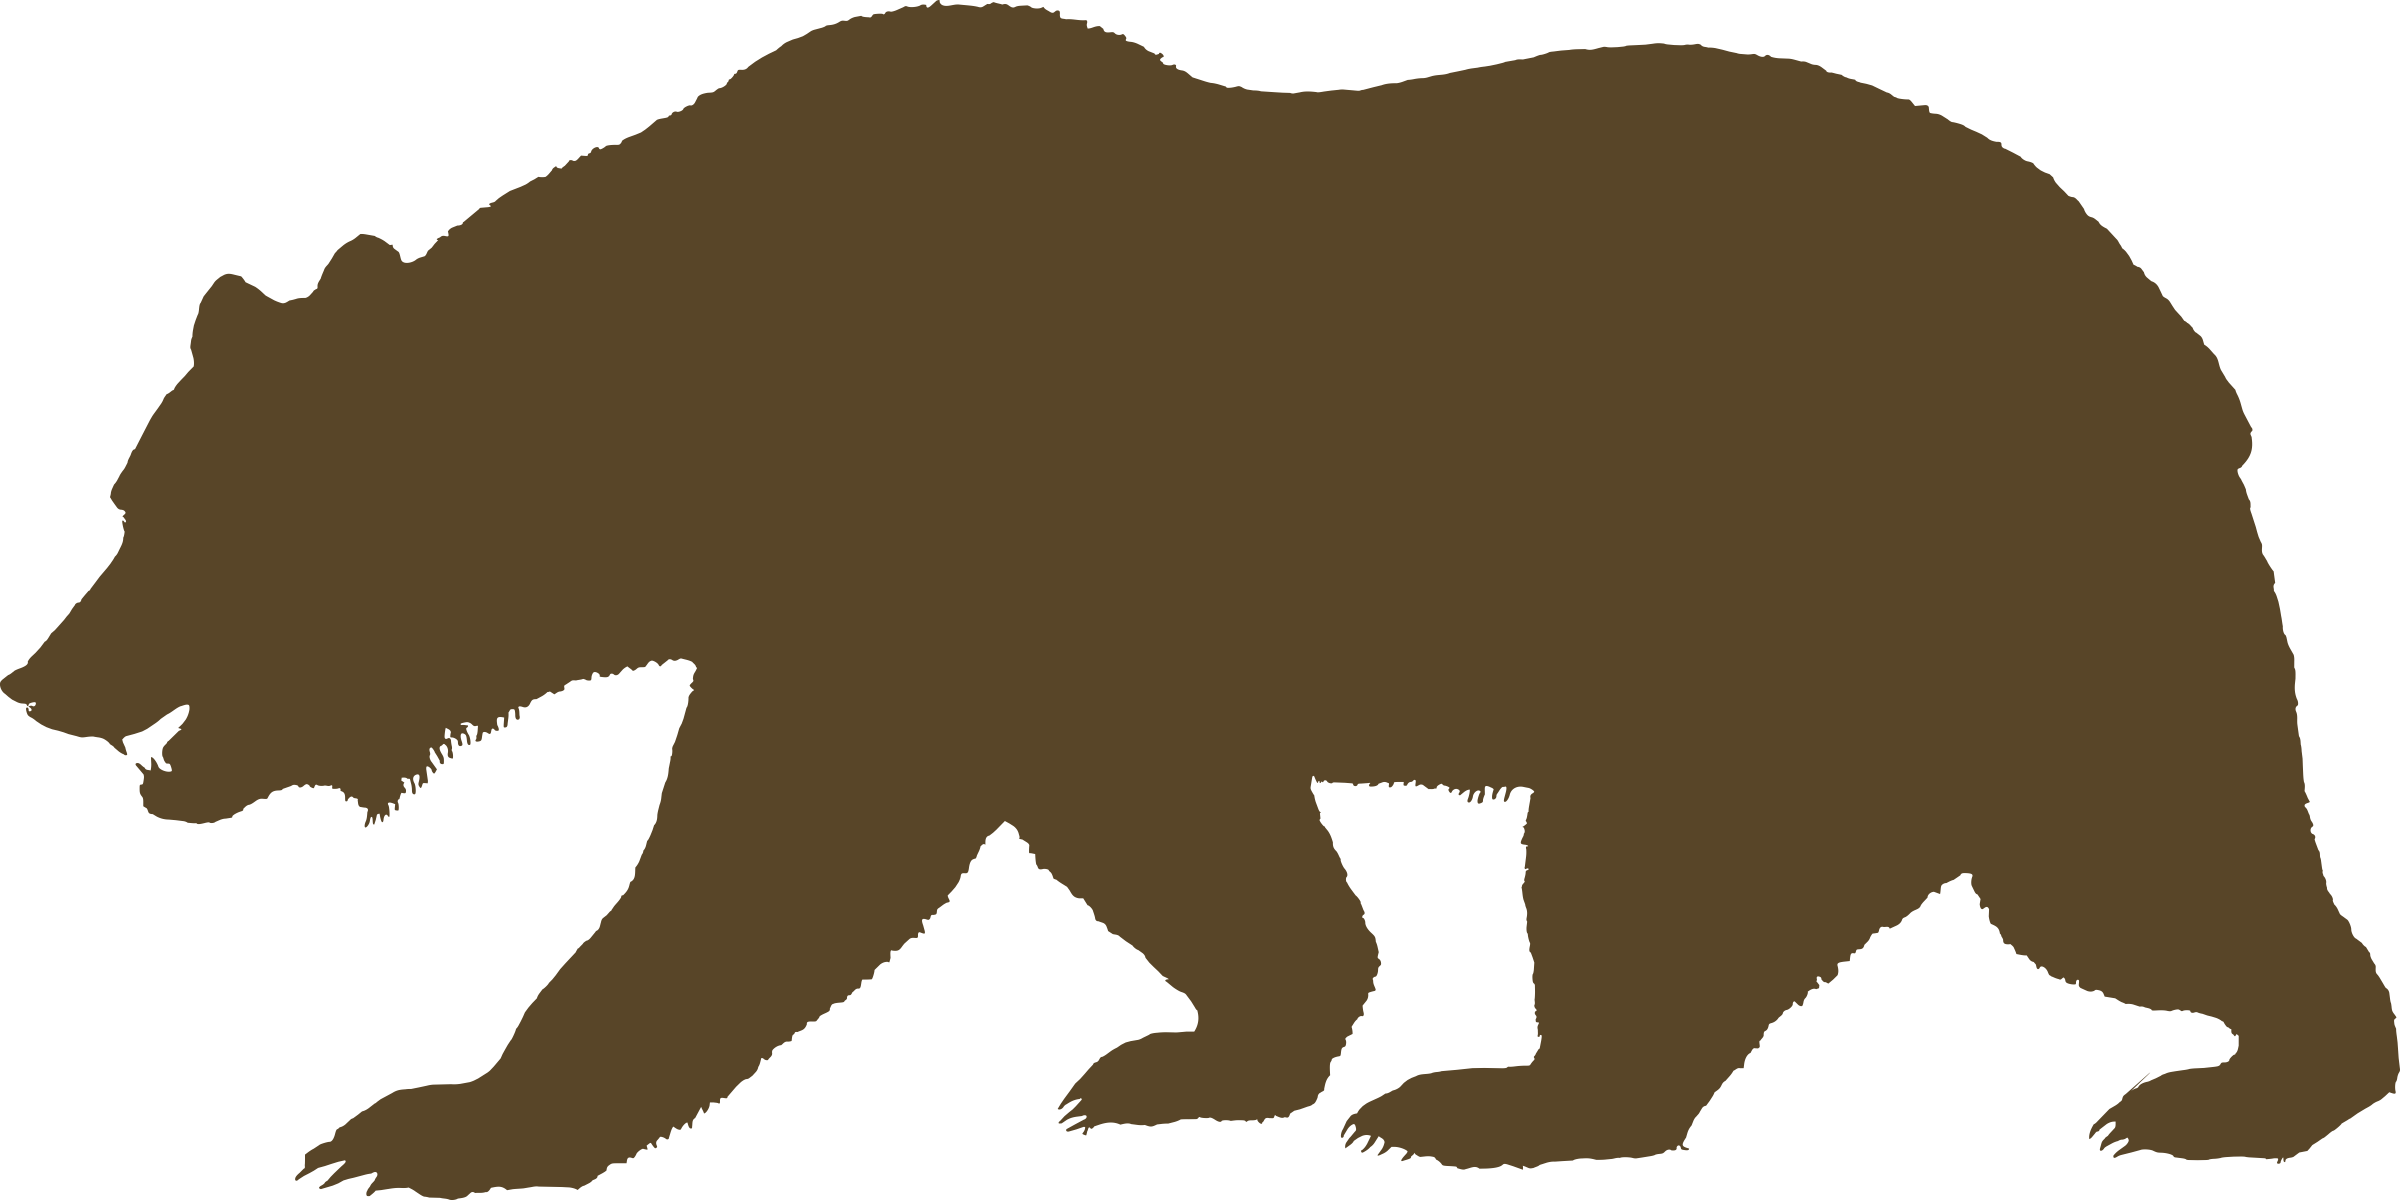 Grizzly Bear clipart outline #14